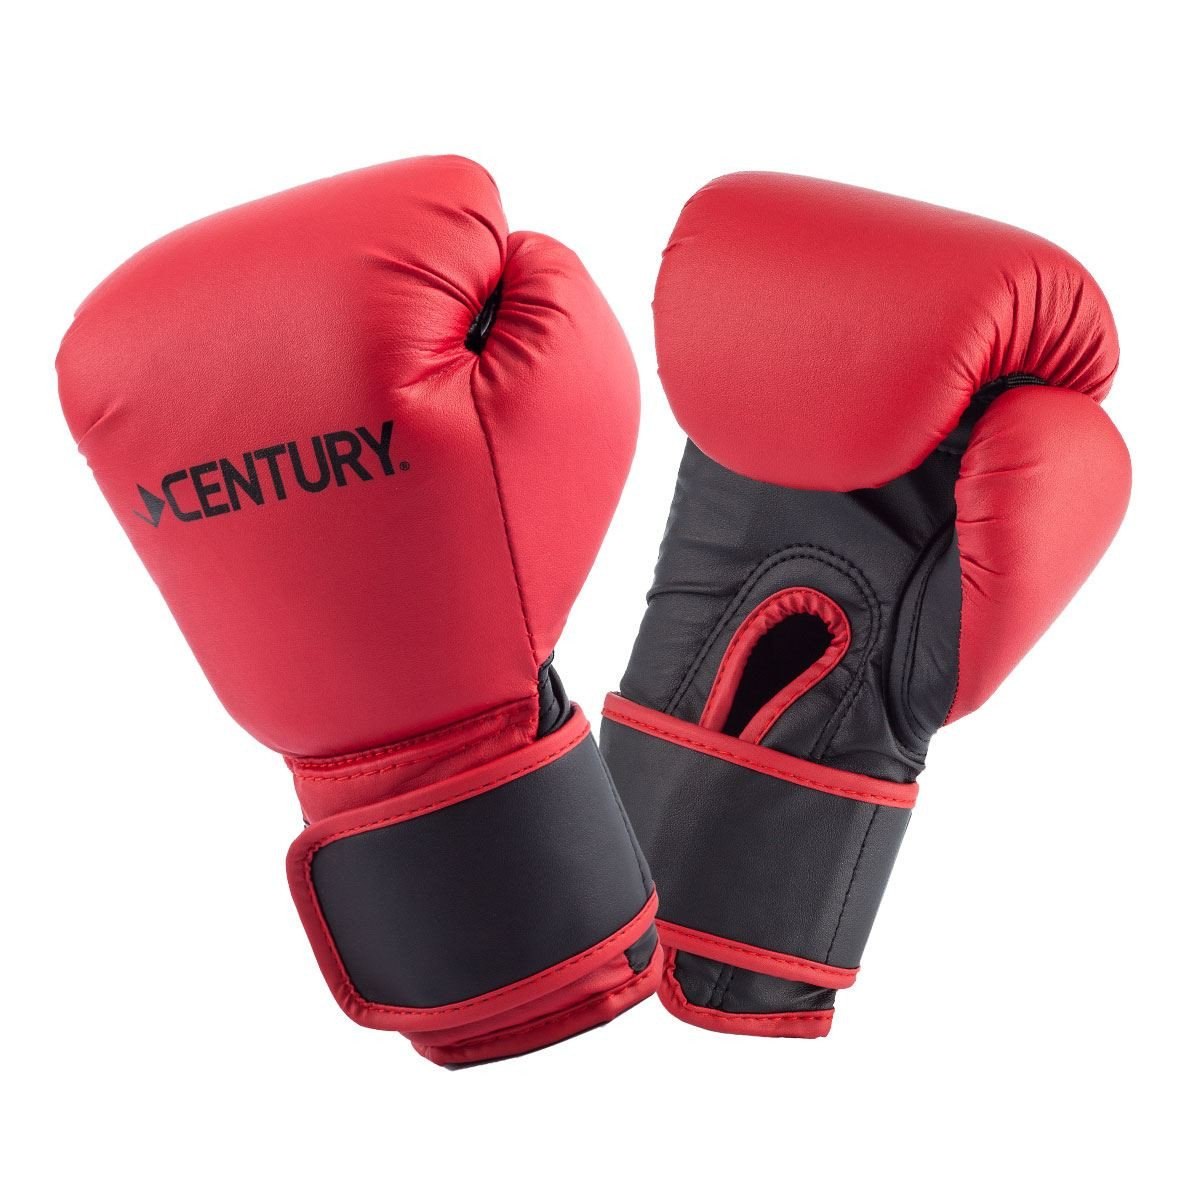 Century Youth Boxing Bloves Red for children c10662